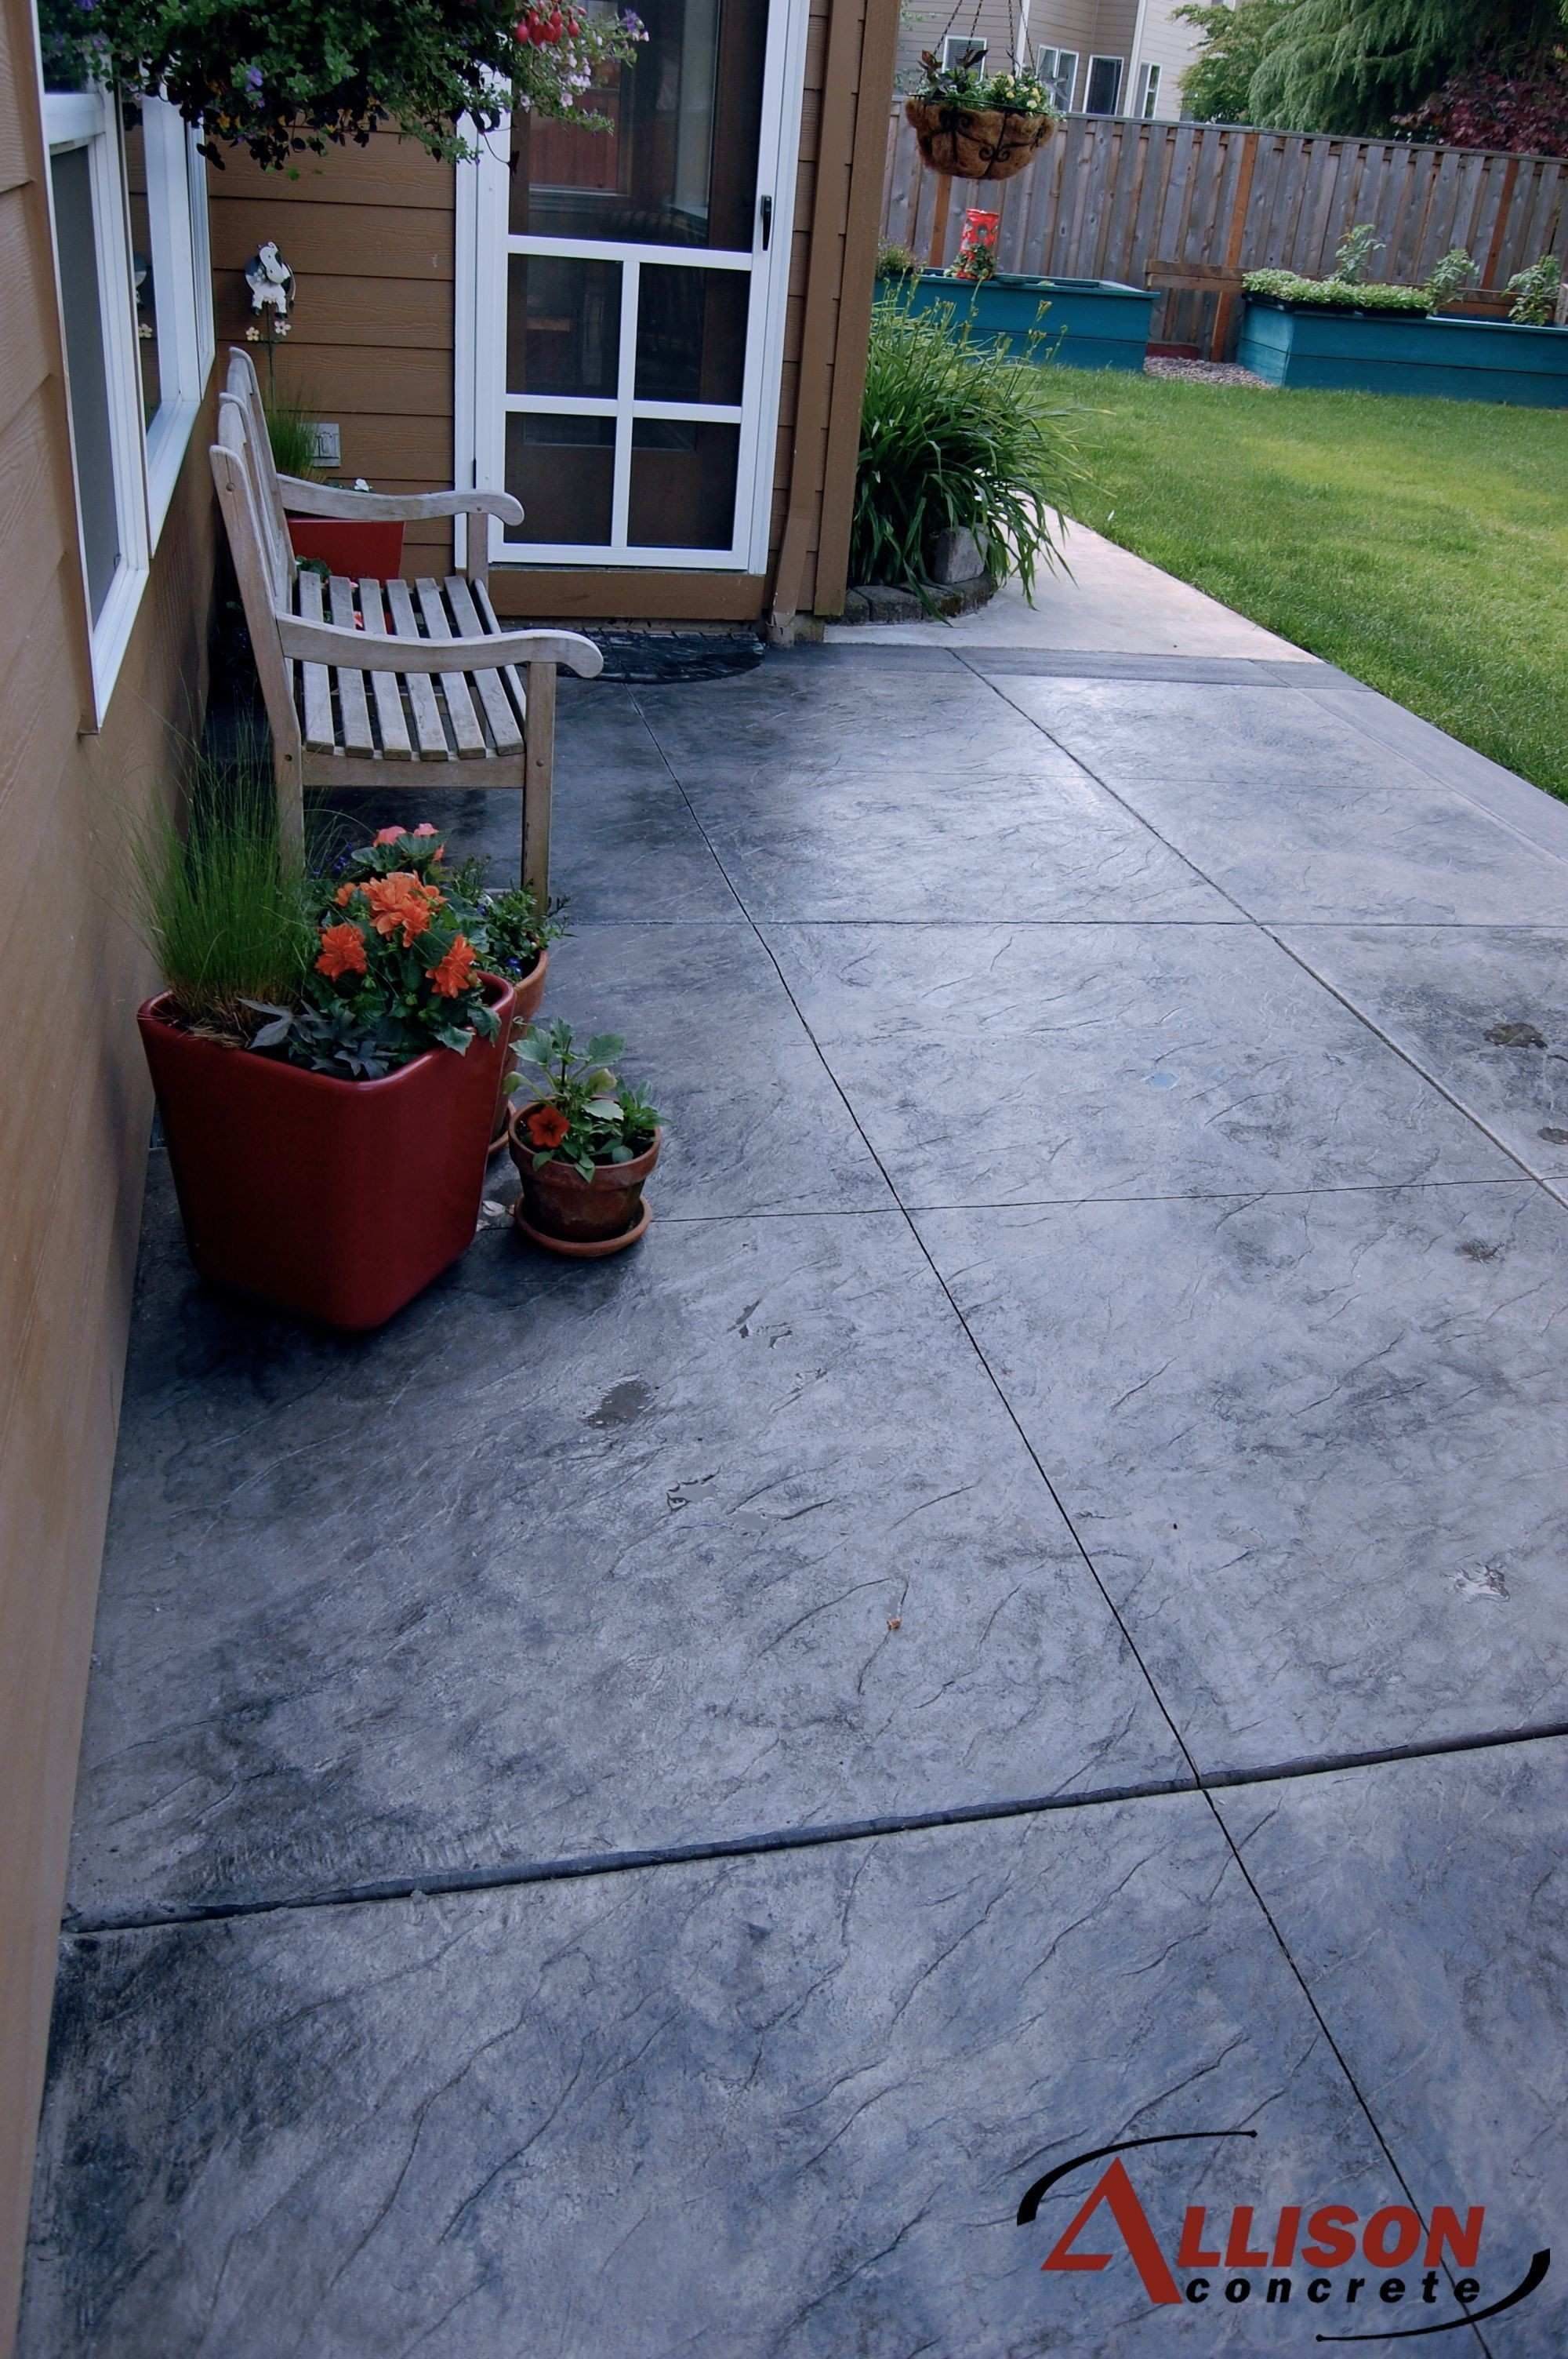 Patio Stamped Concrete Textured Decorative Luxury Patios